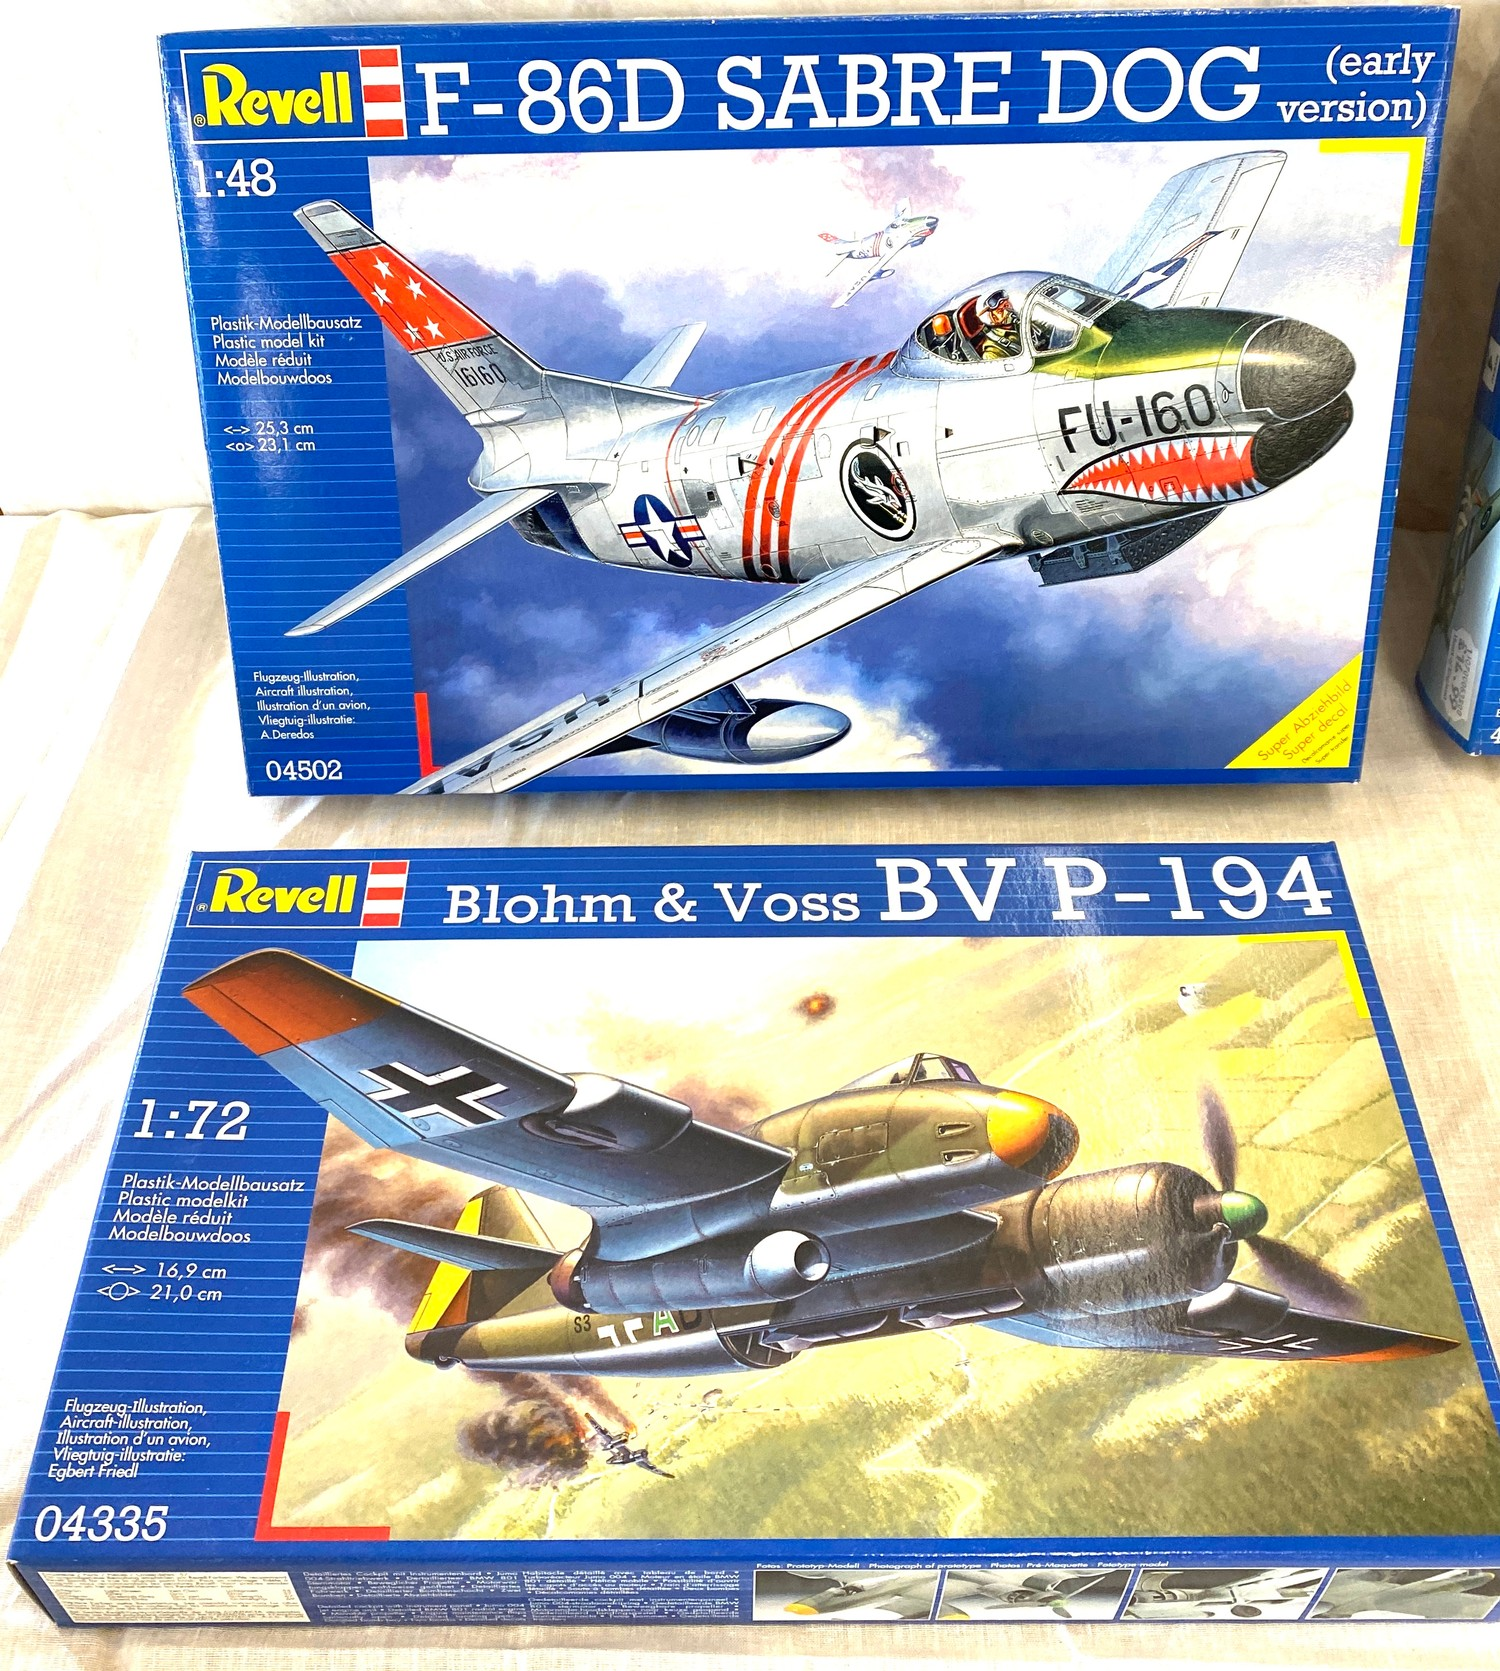 Selection of aircraft models in original boxes, Revell F-86D Sabre Dog, Blohm & Voss BV P-194, - Image 2 of 3